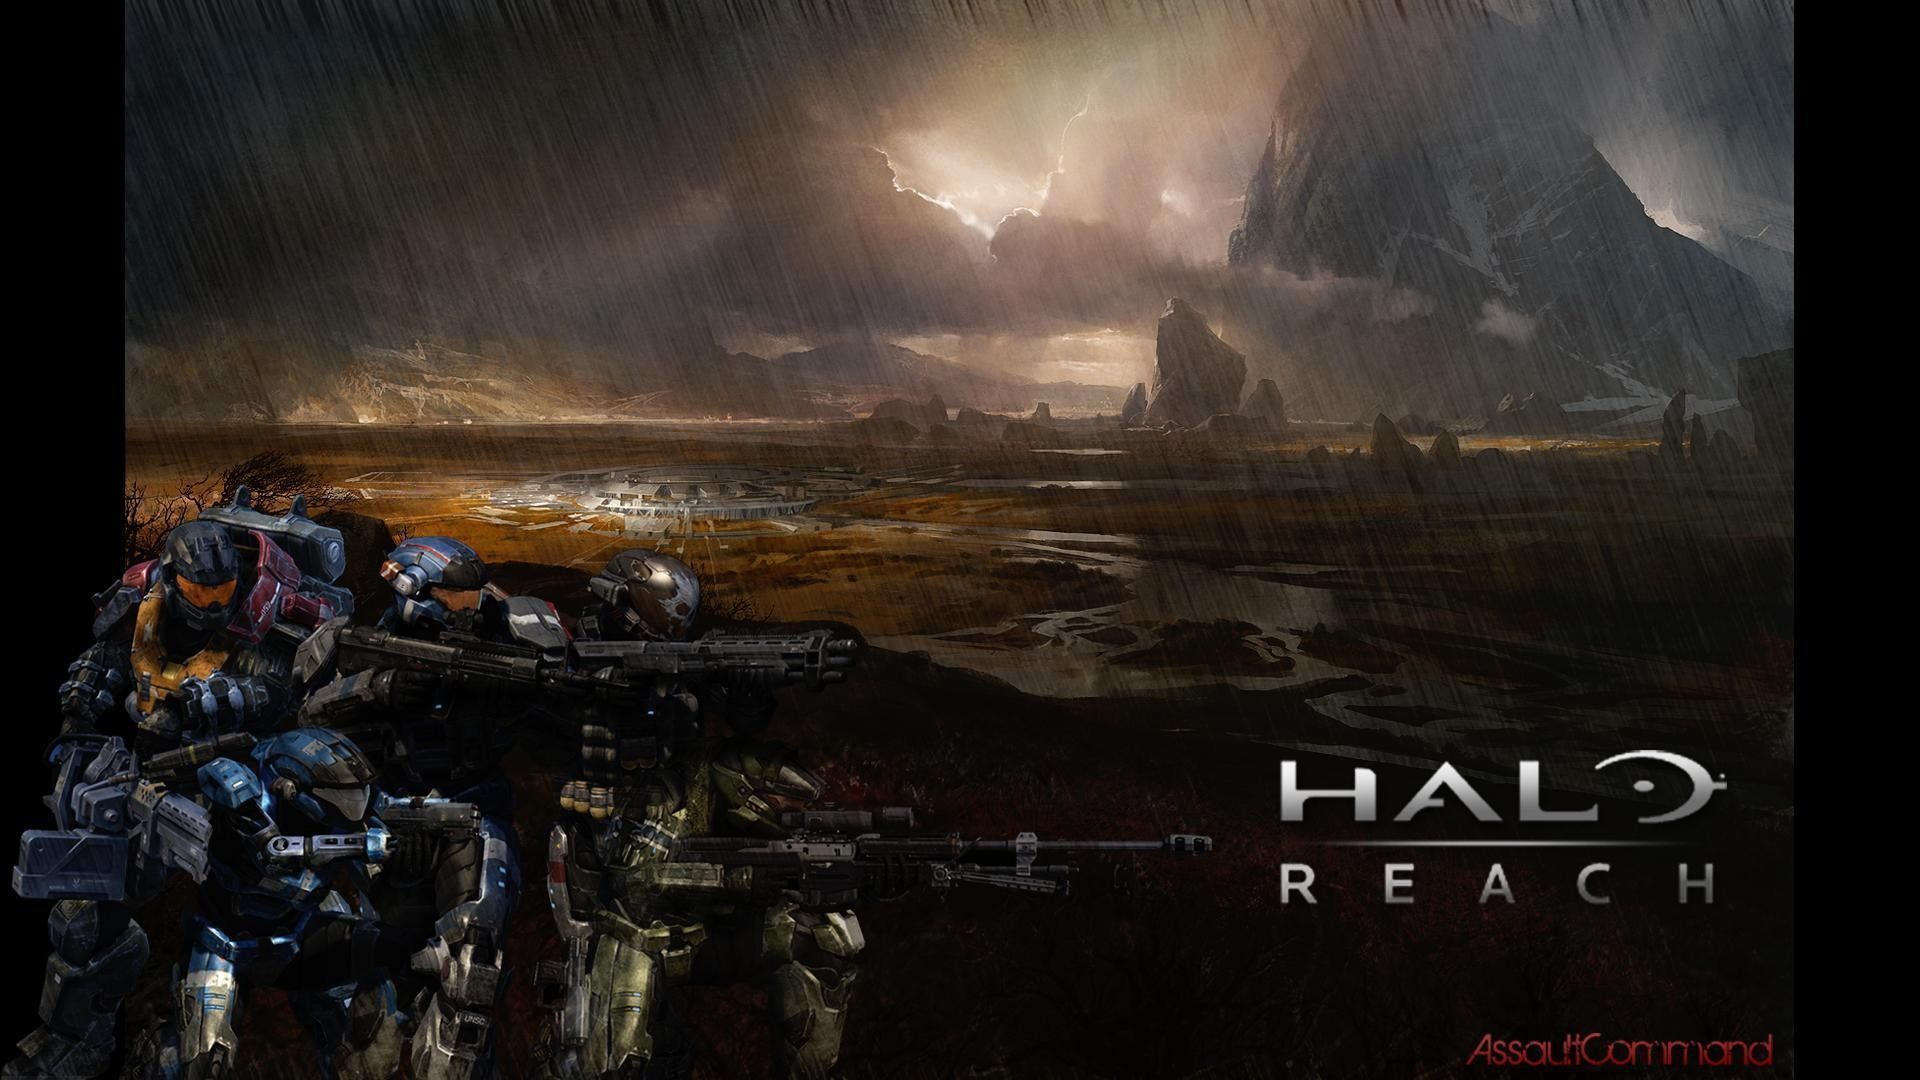 1920x1080 Halo Reach Backgrounds - Wallpaper Cave